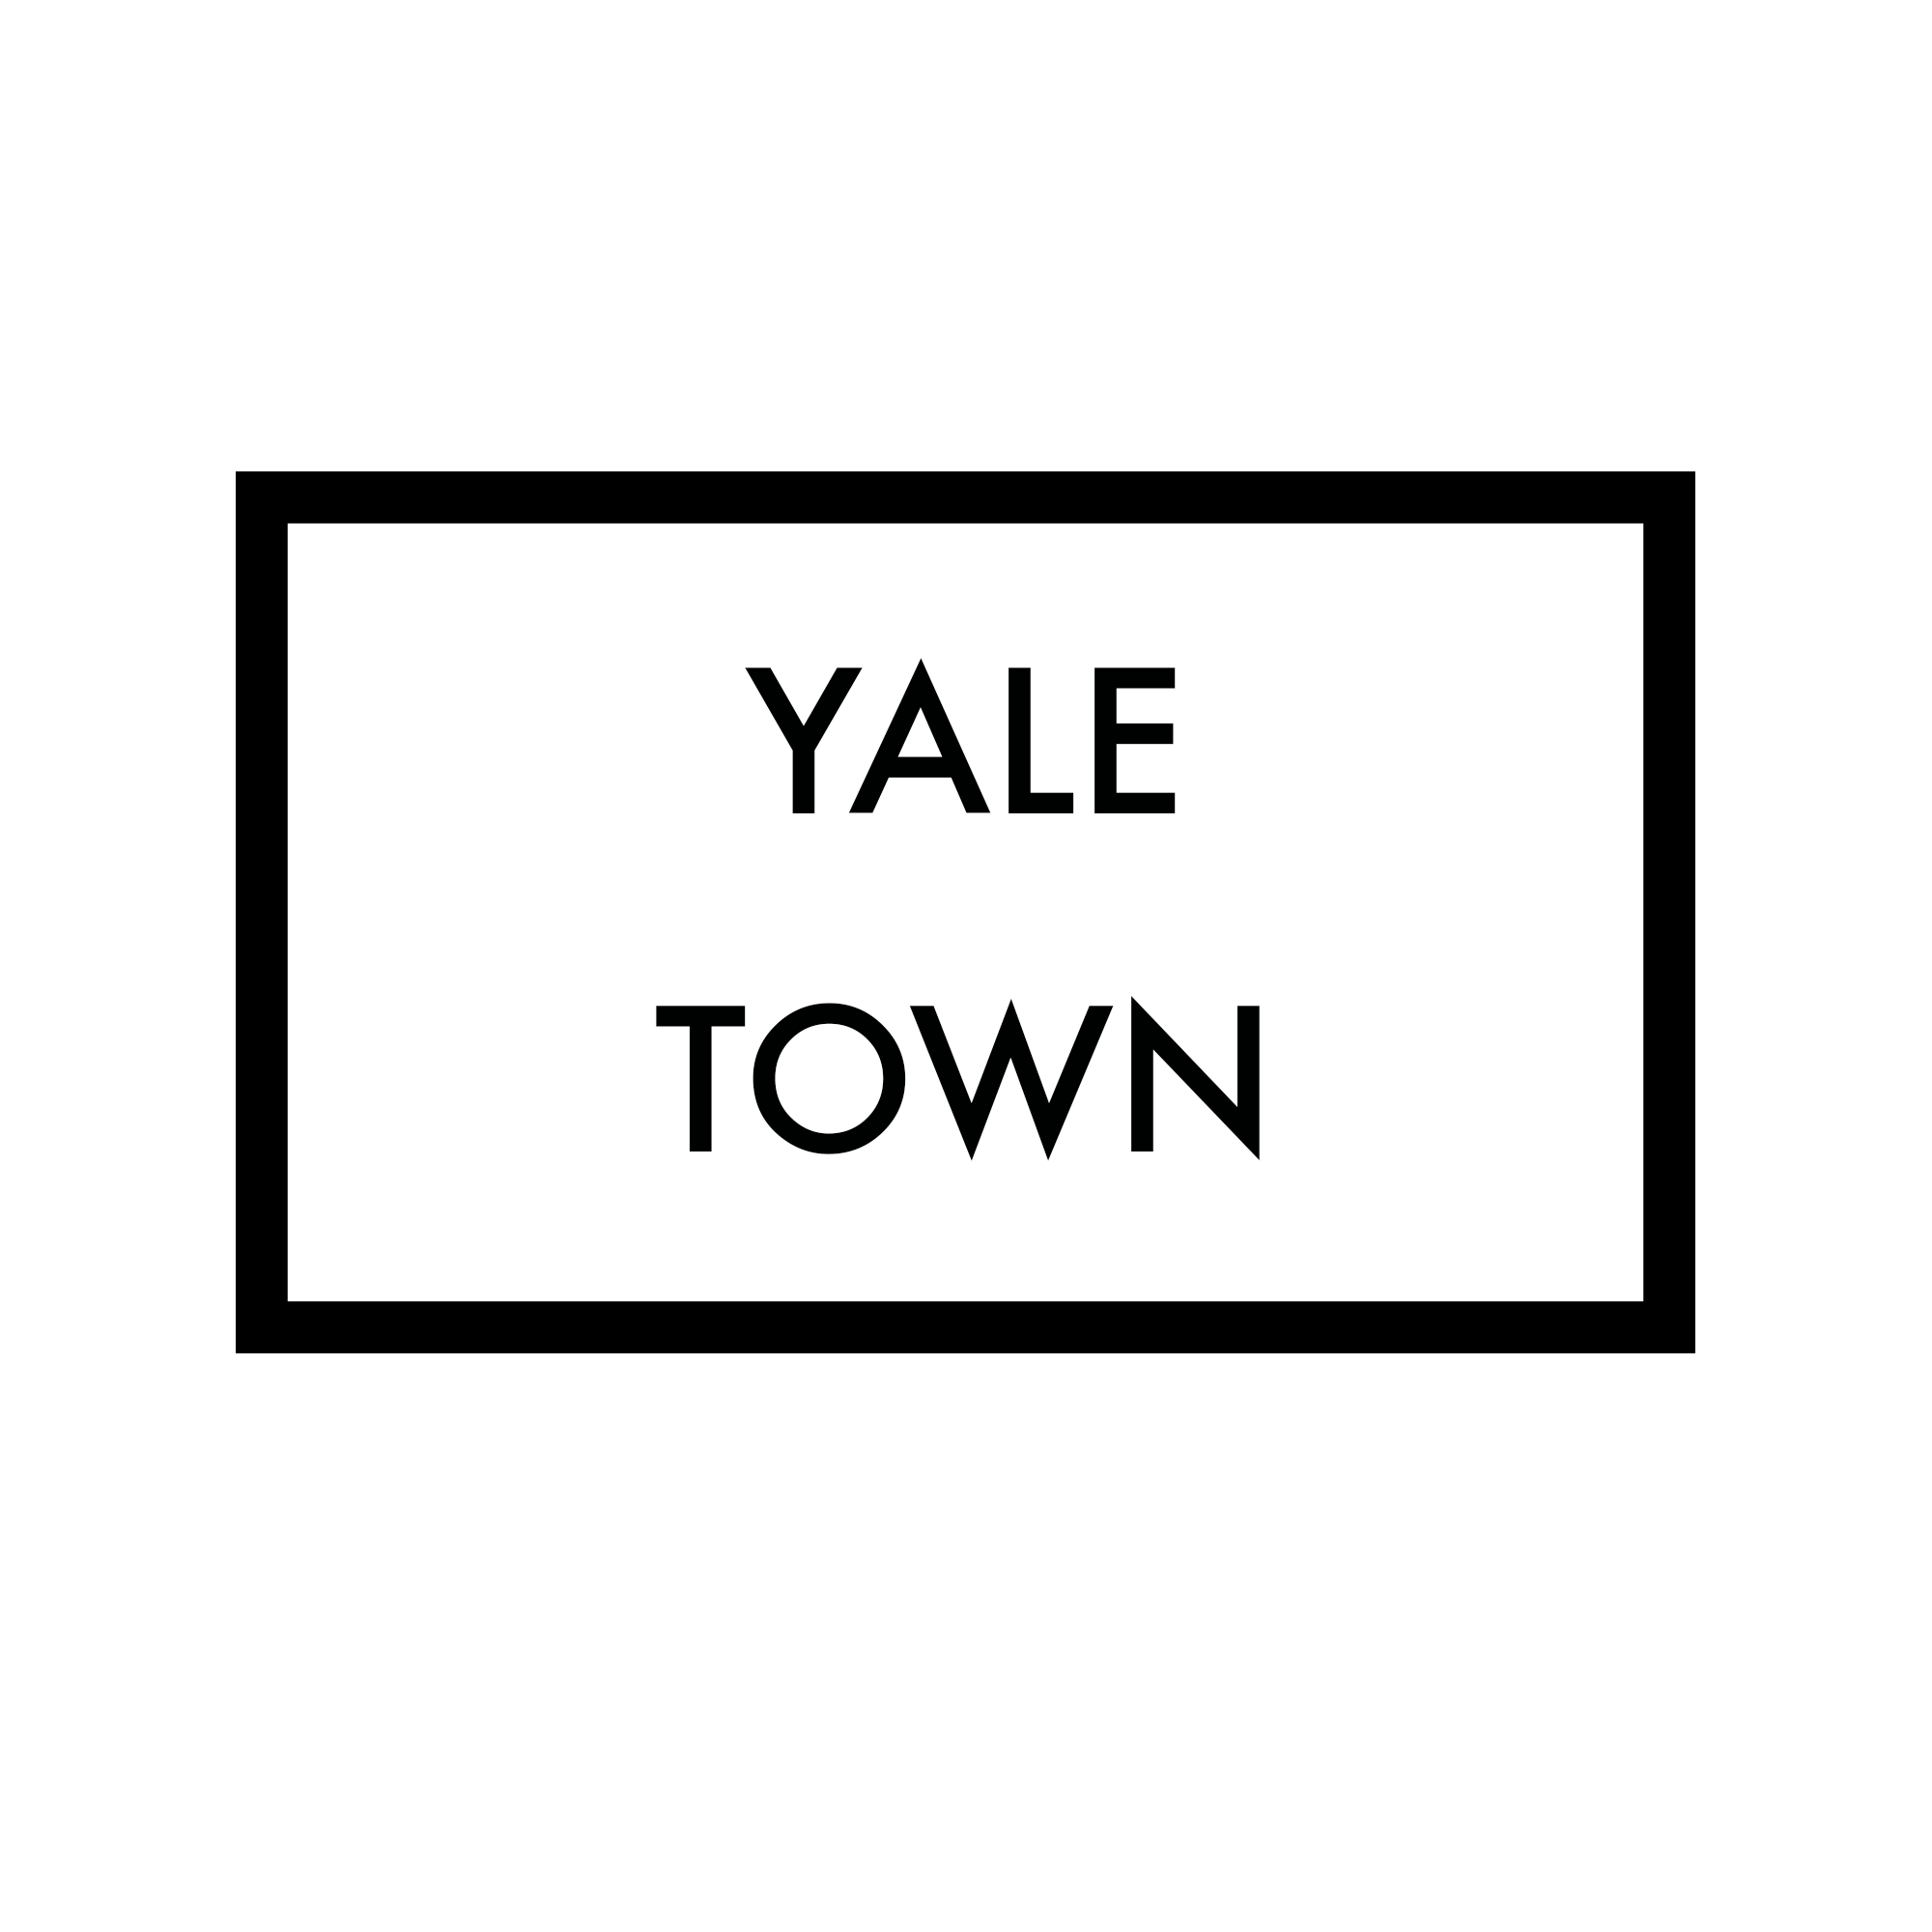 Yaletown rectangle.png